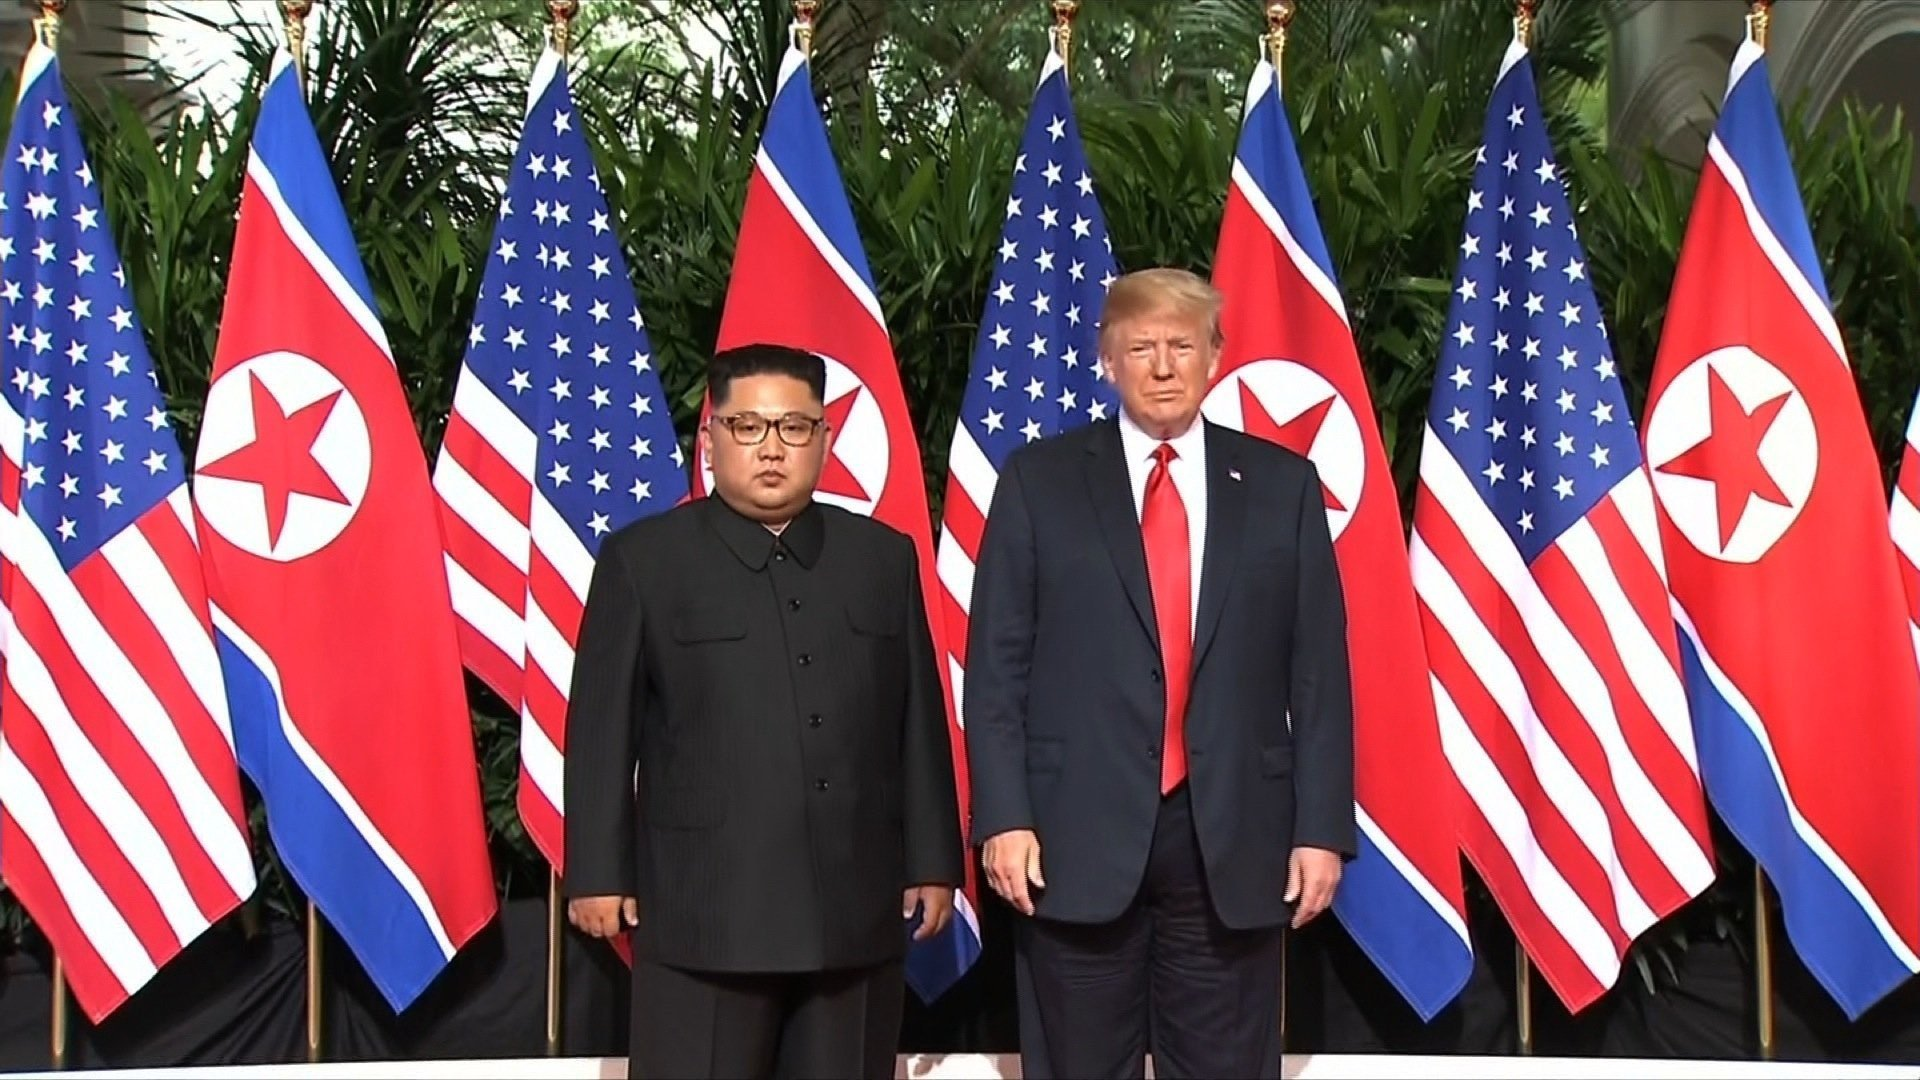 Most adults say that the meeting between President Donald Trump and North Korean Leader Kim Jong Un was a good idea, according to a Monmouth poll released Thursday.